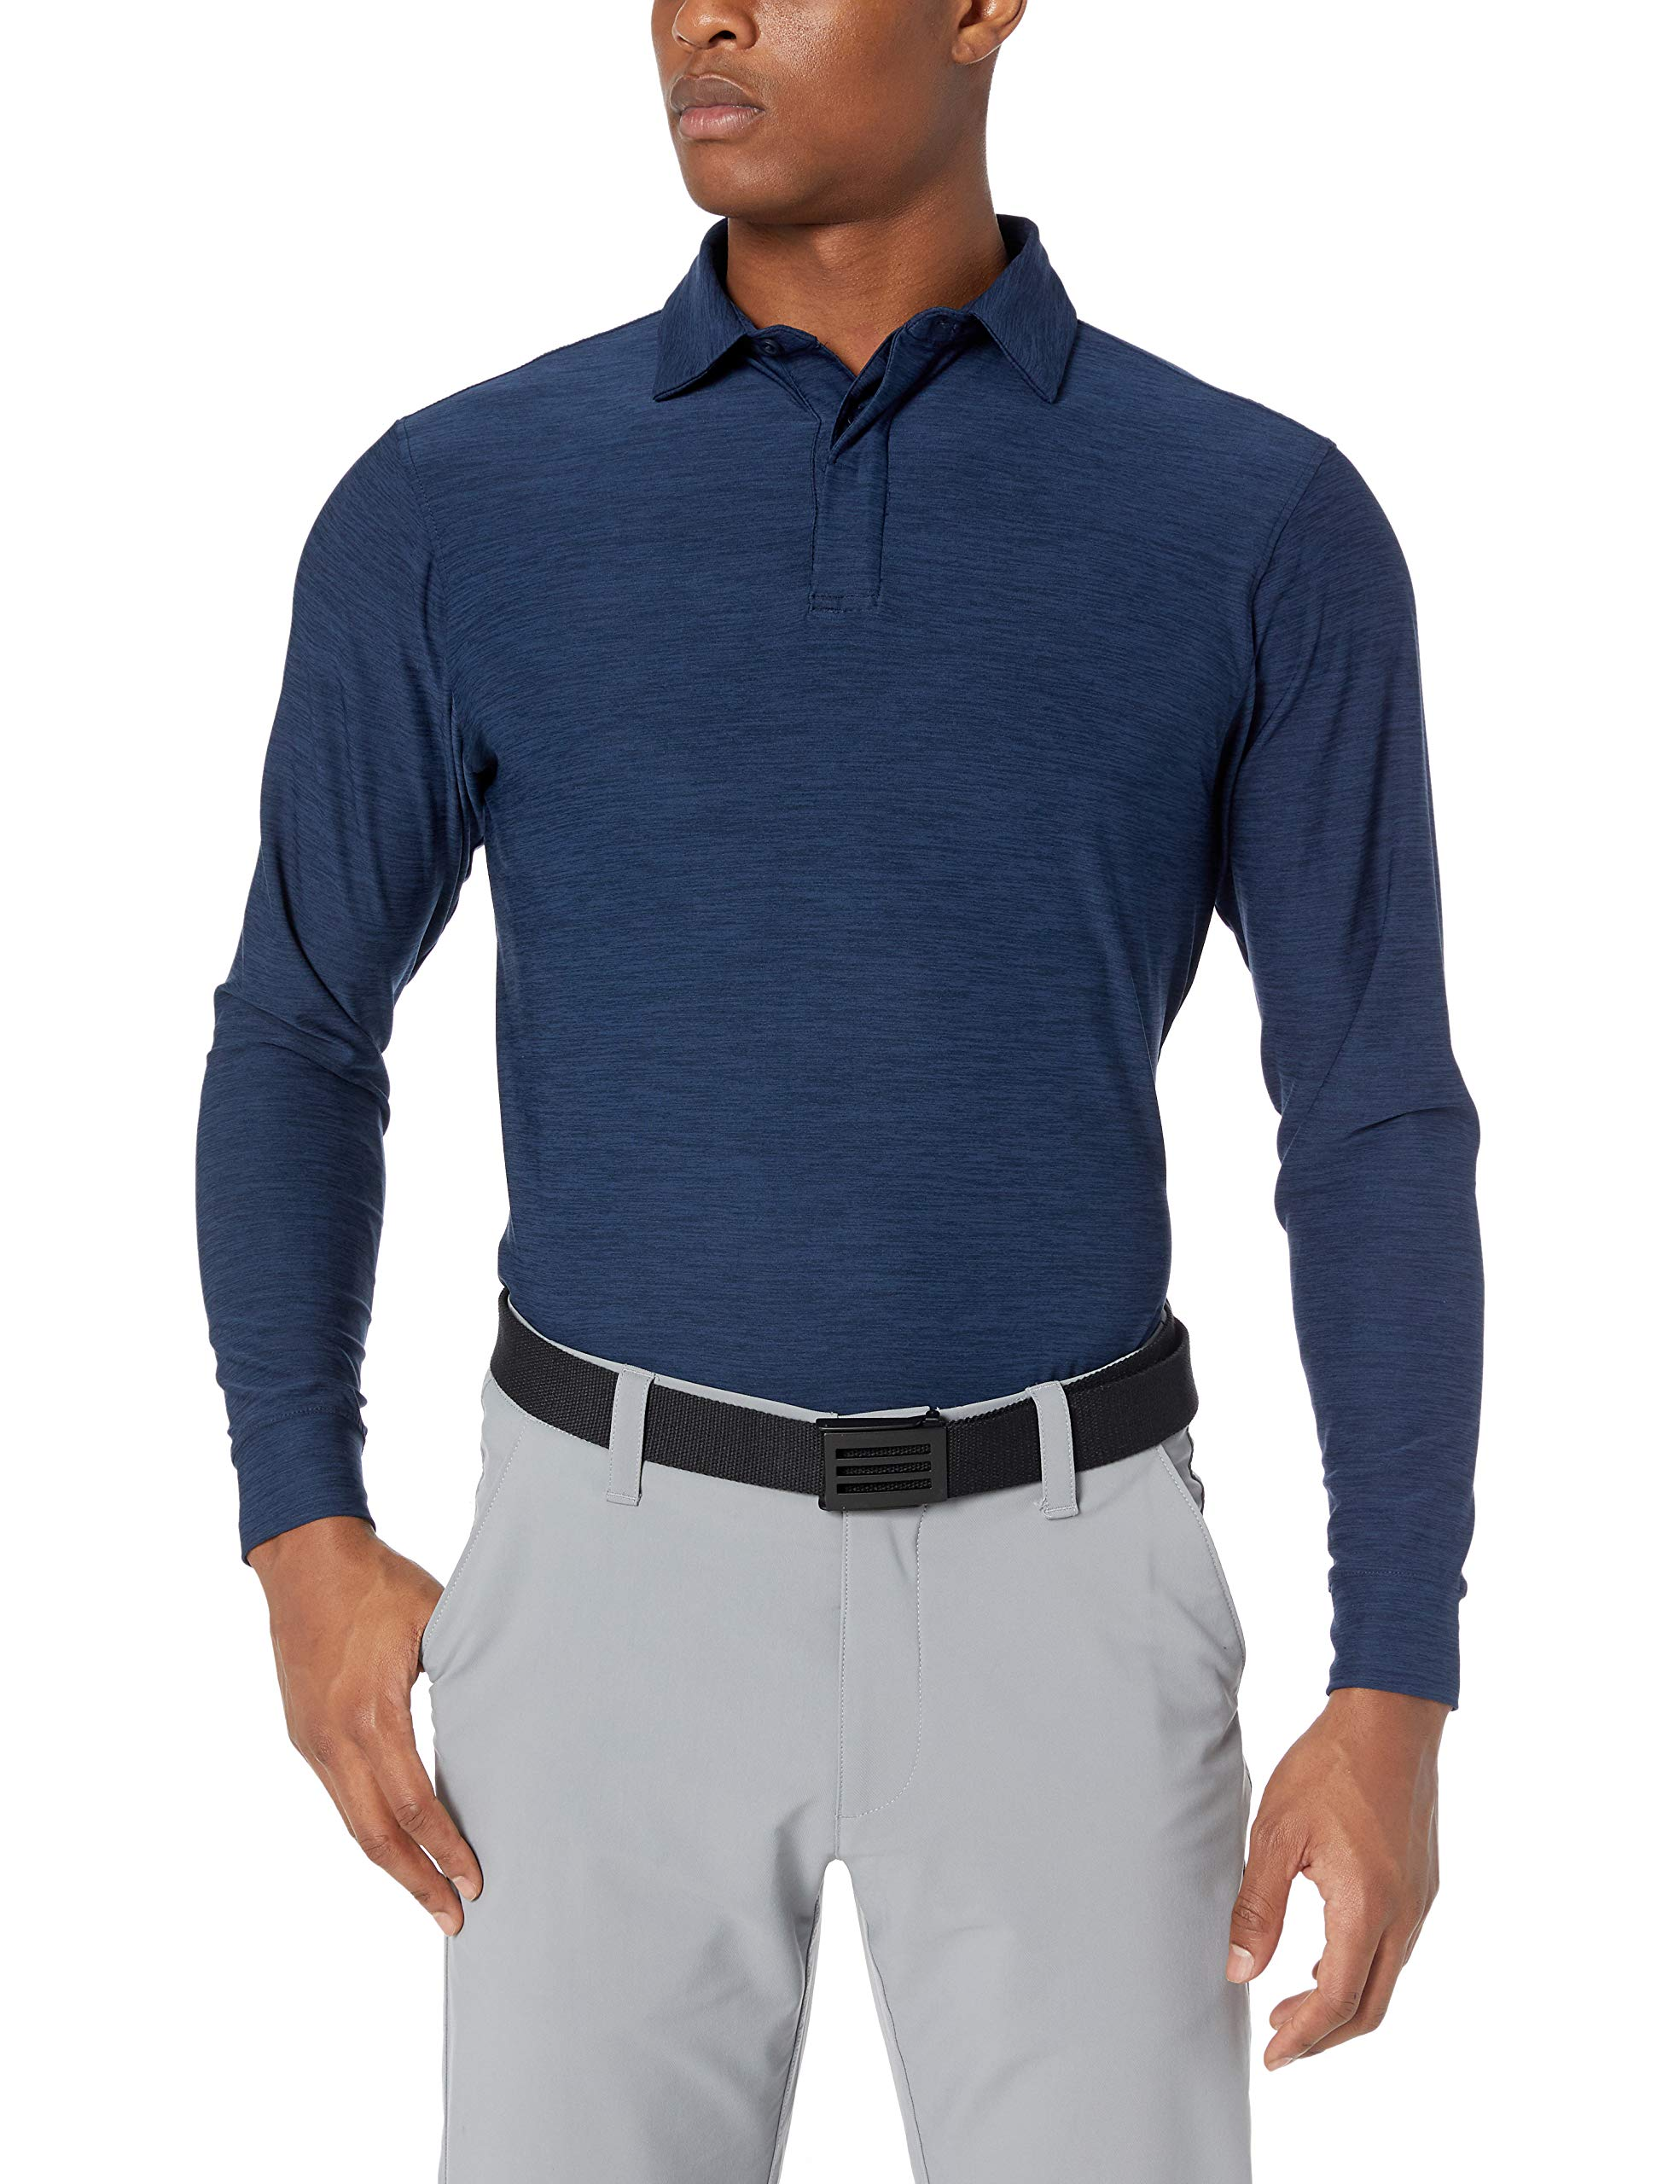 5de589af5c66 Best Rated in Men s Golf Shirts   Helpful Customer Reviews - Amazon.com